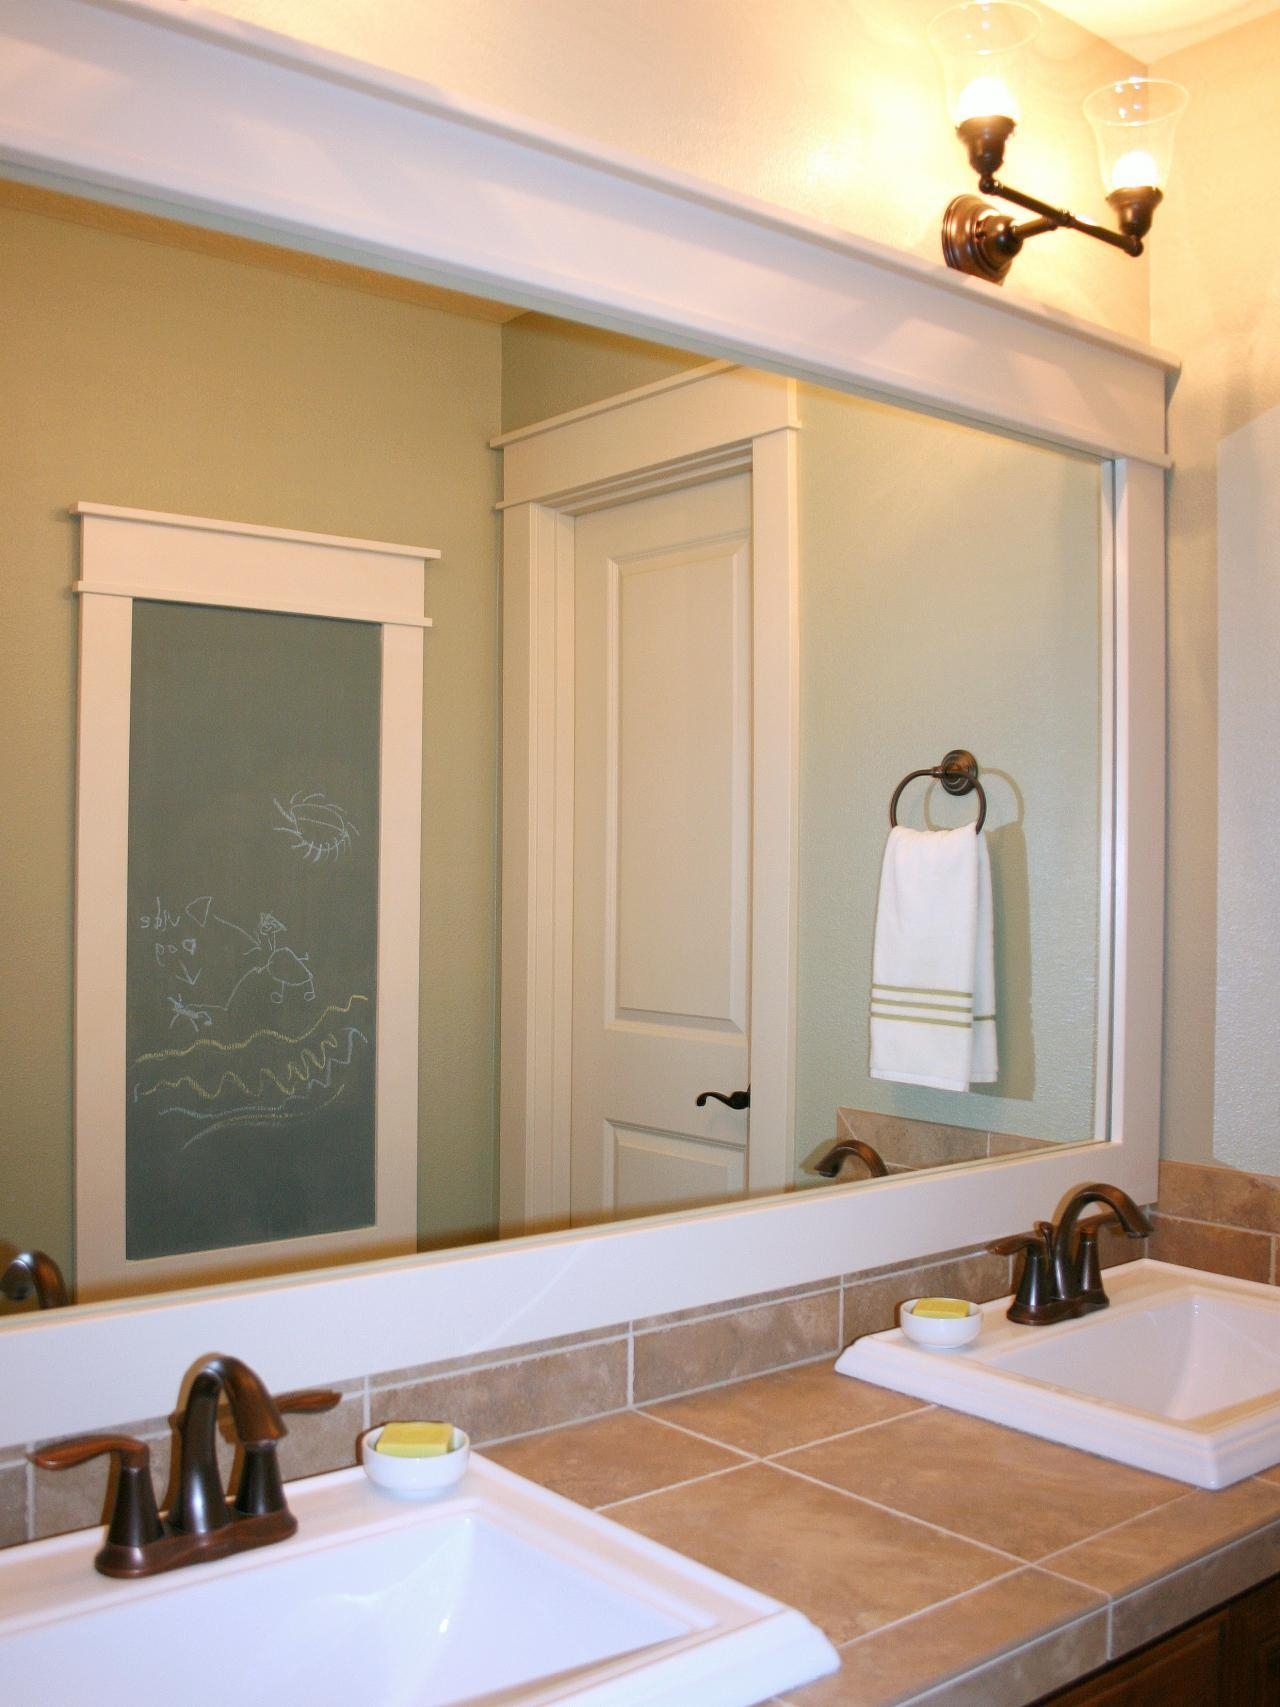 How To Frame A Mirror | Hgtv Within Extra Wide Bathroom Mirrors (Image 17 of 20)